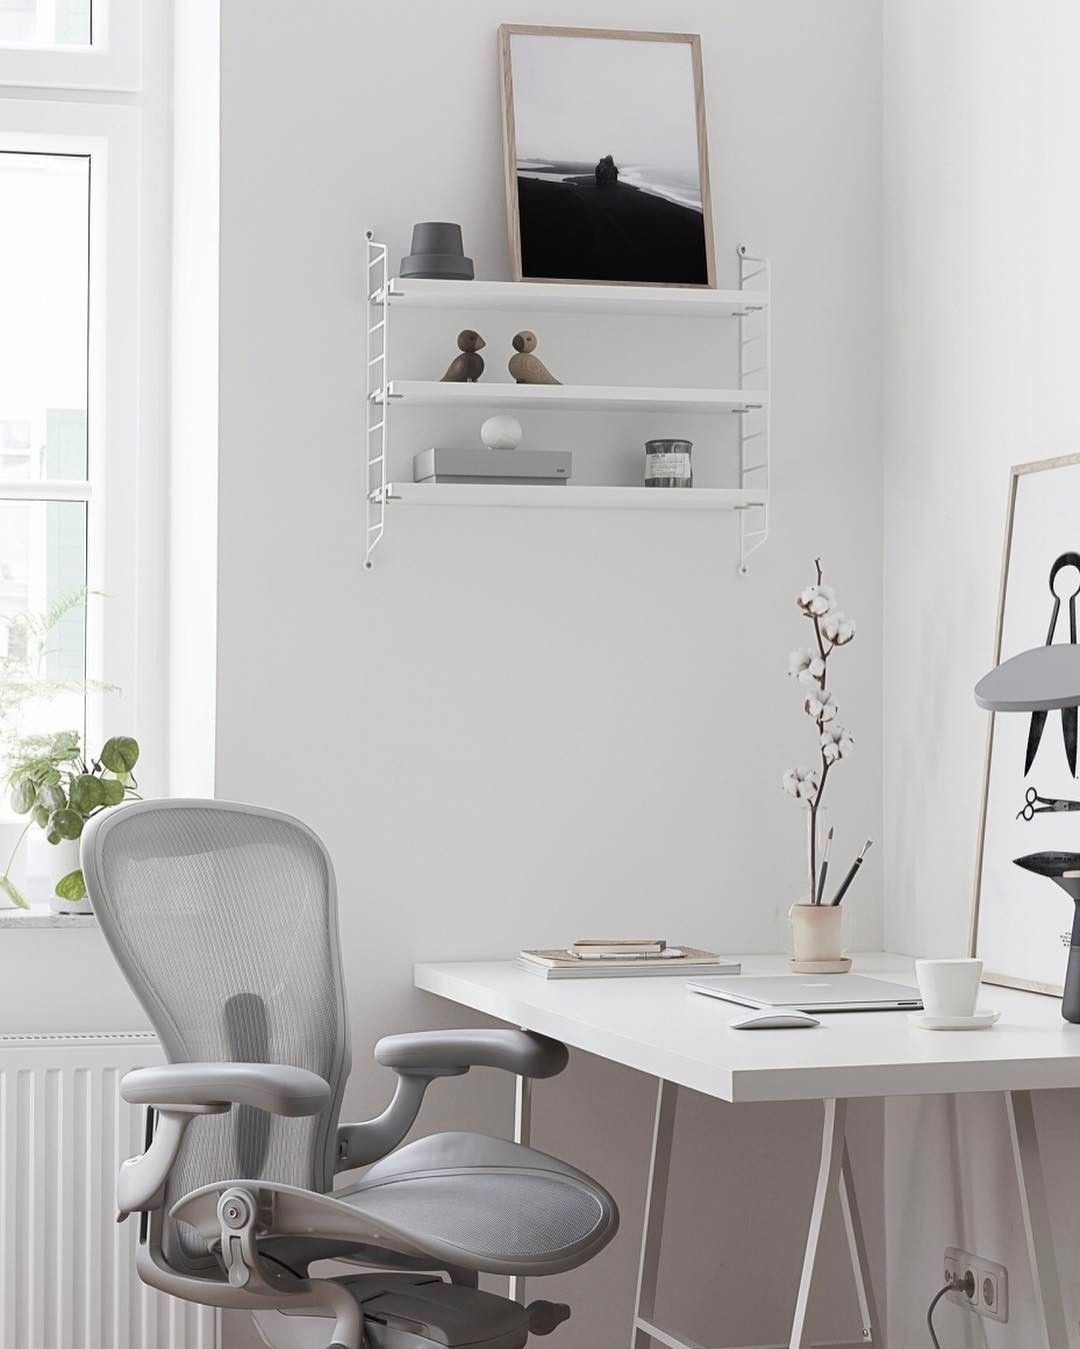 I Got To Try Out The Stylish New Hermanmillerltd Aeron Chair In Mineral And You Can Read All About It Home Office Design Office Chair Design Home Office Decor #office #chair #living #room